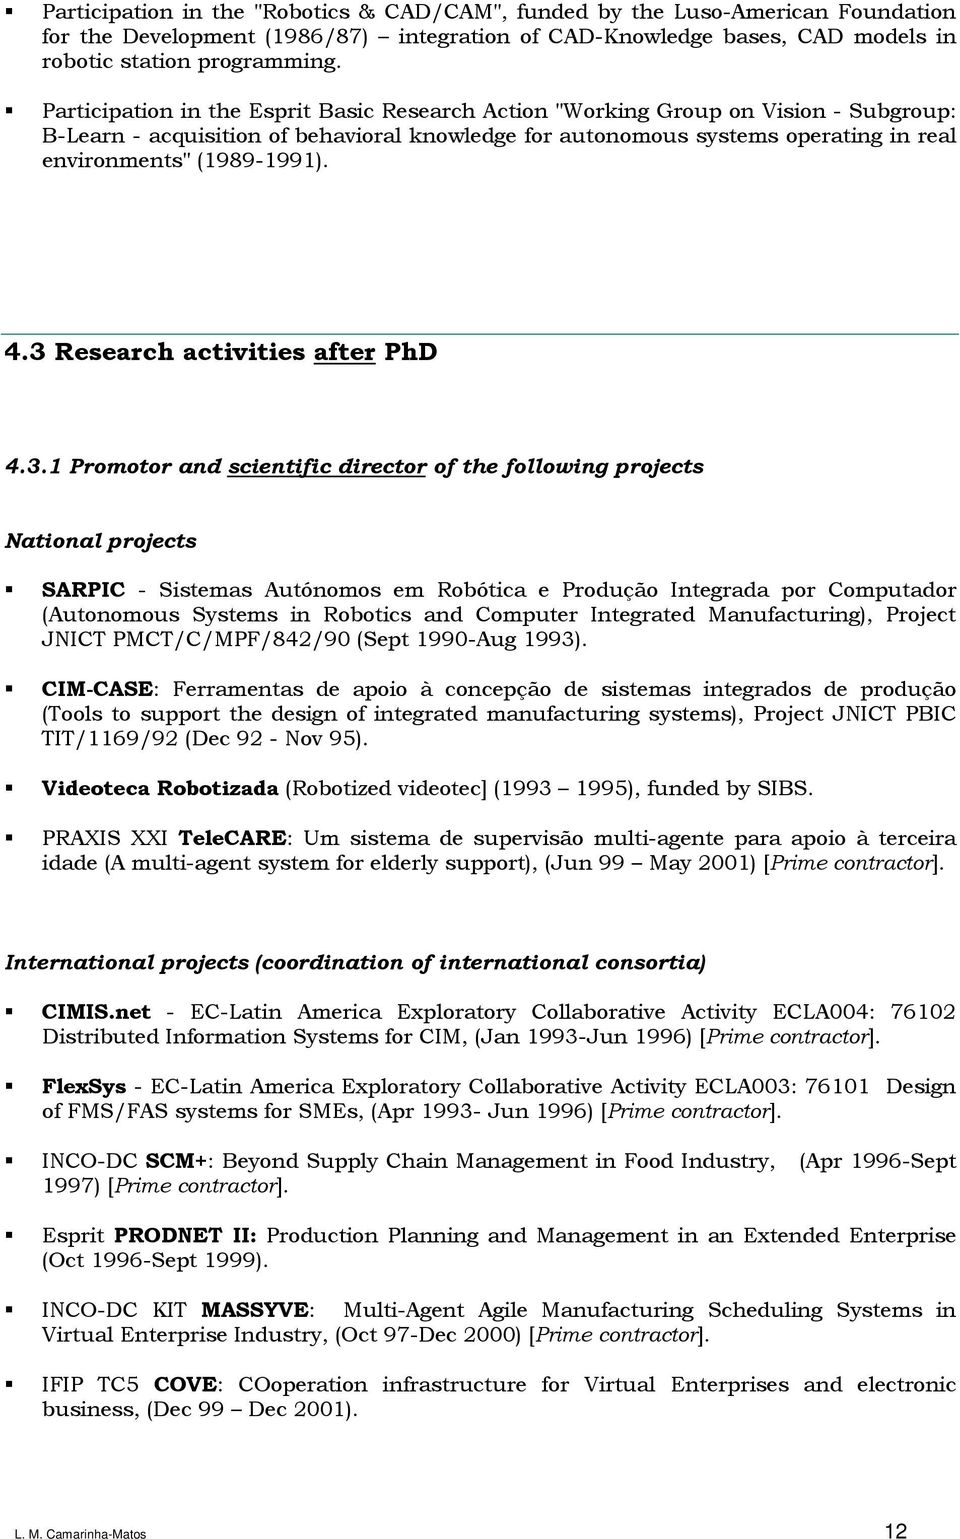 4.3 Research activities after PhD 4.3.1 Promotor and scientific director of the following projects National projects SARPIC - Sistemas Autónomos em Robótica e Produção Integrada por Computador